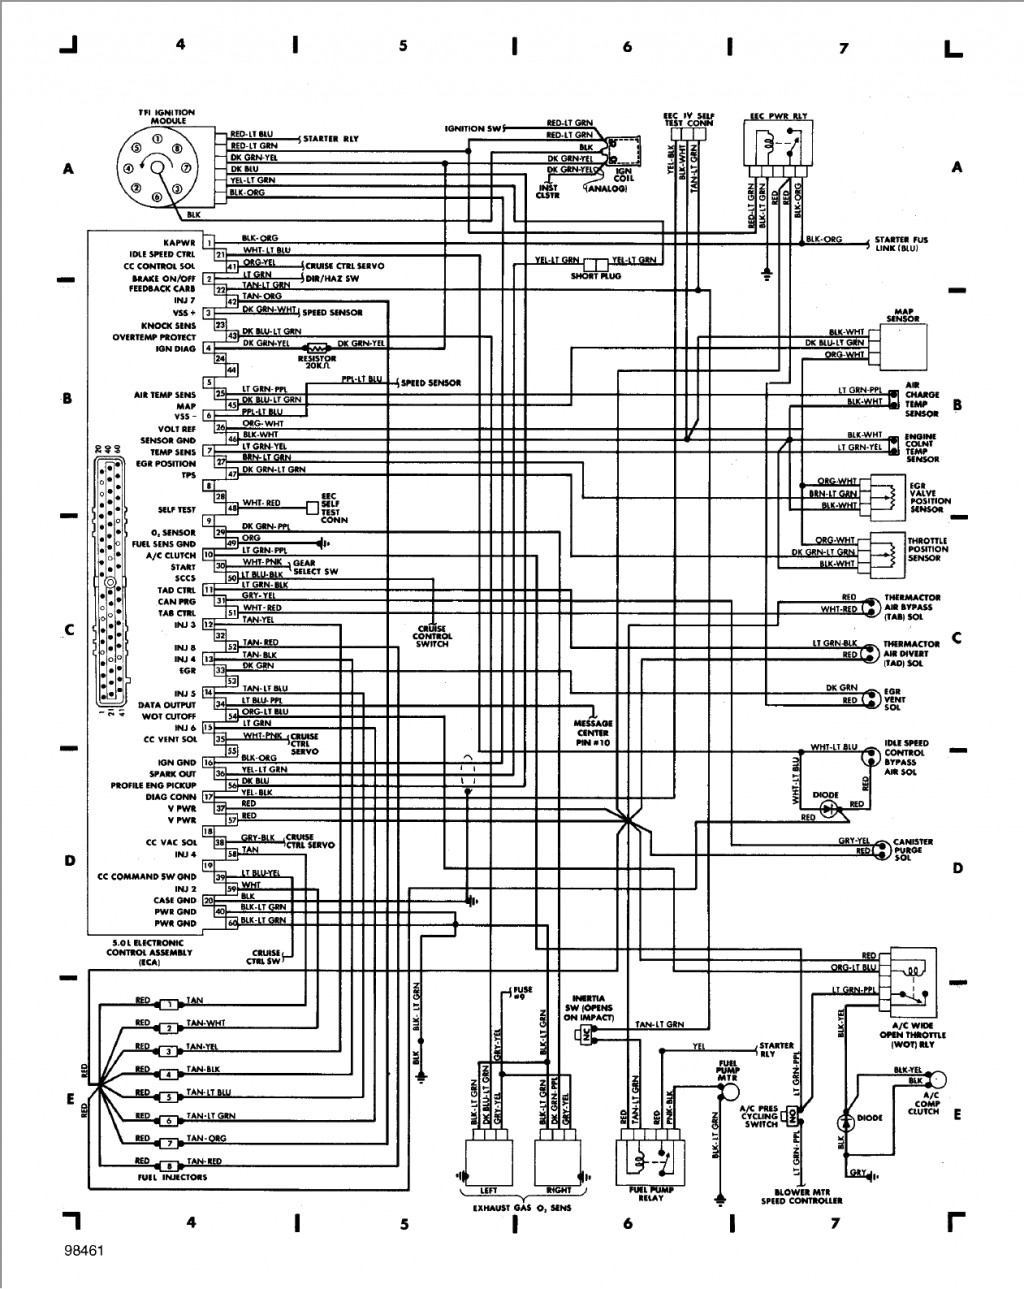 hight resolution of size of car diagram i need an engine wiring diagram forcoln town car am